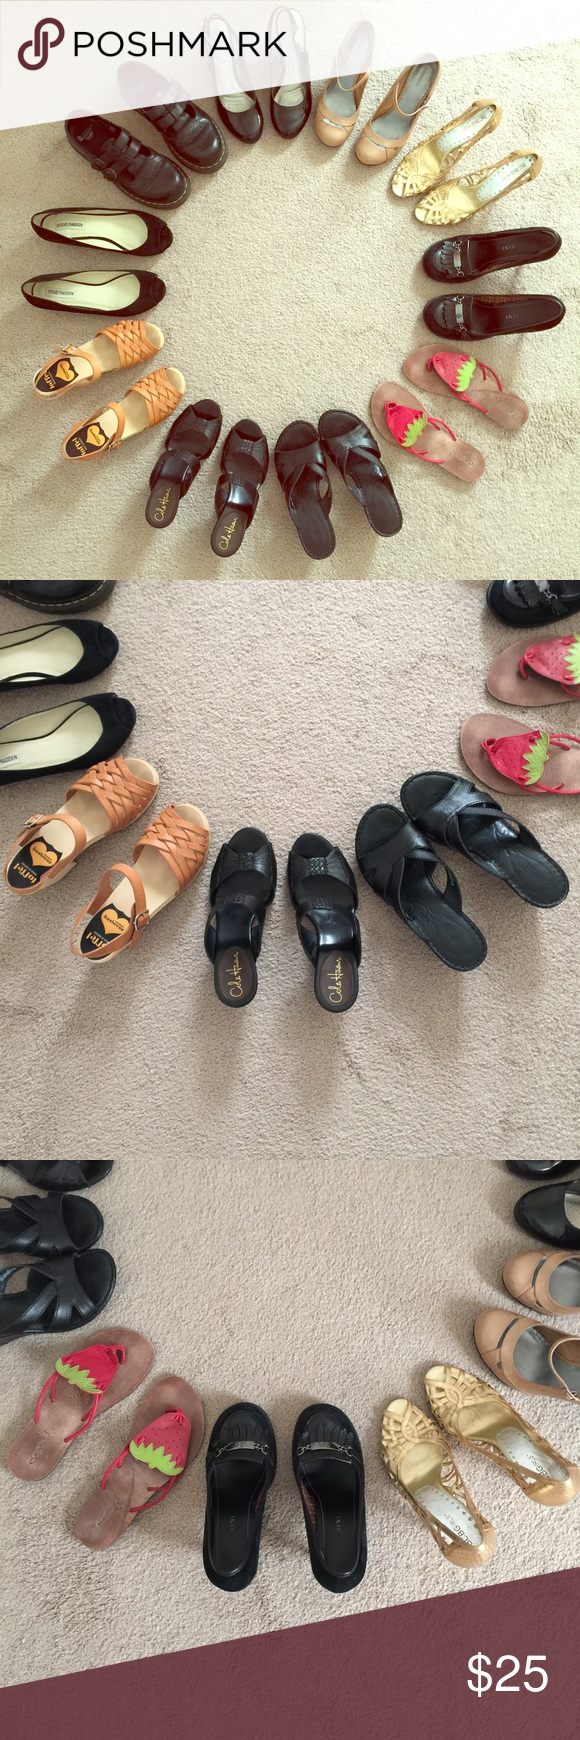 SHOES!!! Selling ALL that are pictured. All are size 7. Cole Haan, Dr. Martens, Sweedish Hasbeens, Steve Madden, Born, Gianni Bini, BCBG, all pictured here, even a few from Payless, 2 pair never worn. Some have separate listing. Prices vary between styles. Prices always negotiable. Please comment if you have questions or want to see something up close ❤️ Steve Madden Shoes